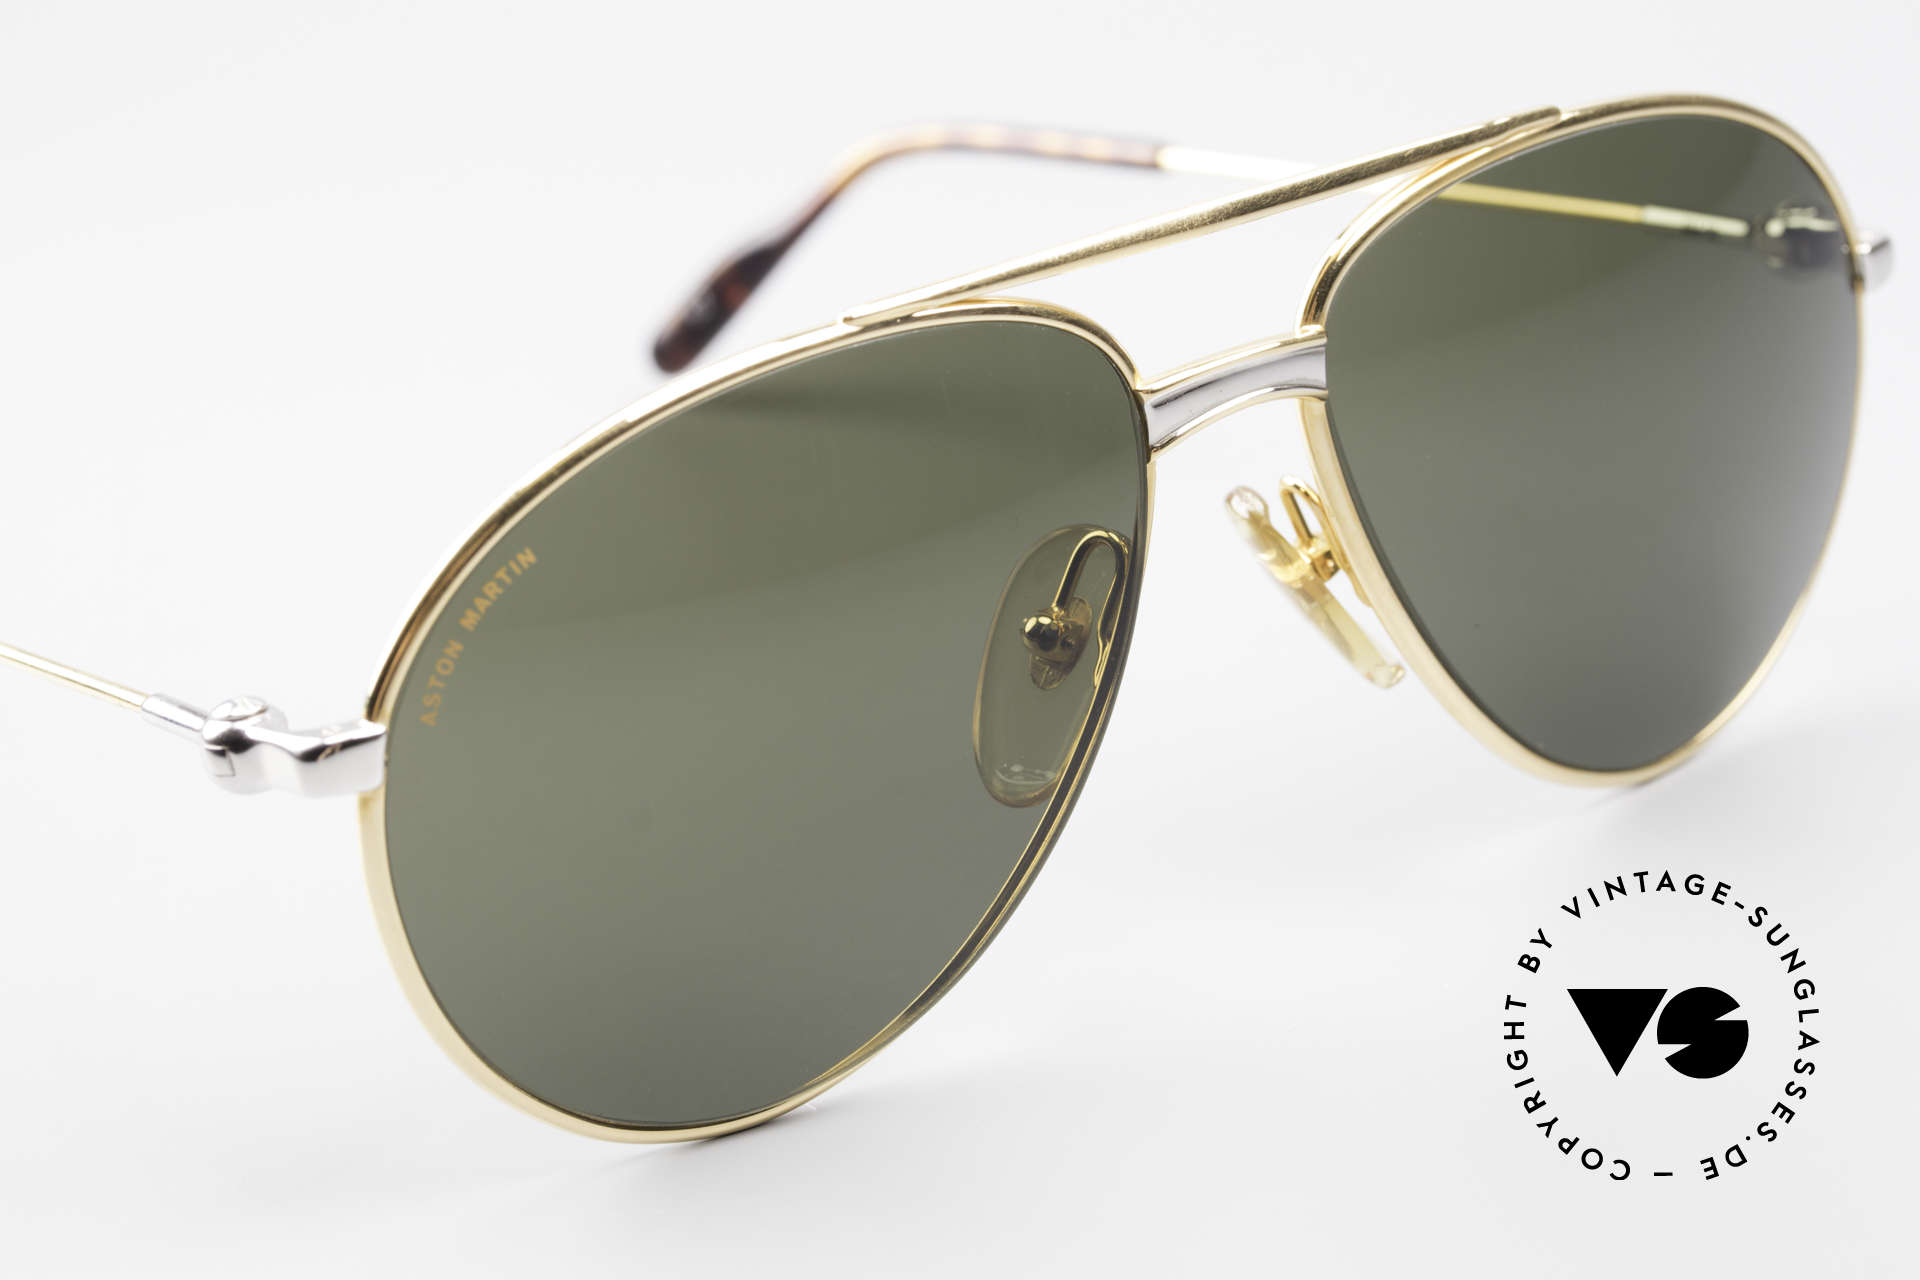 Aston Martin AM02 Aviator Shades James Bond Style, non-reflection mineral lenses with Aston Martin lettering, Made for Men